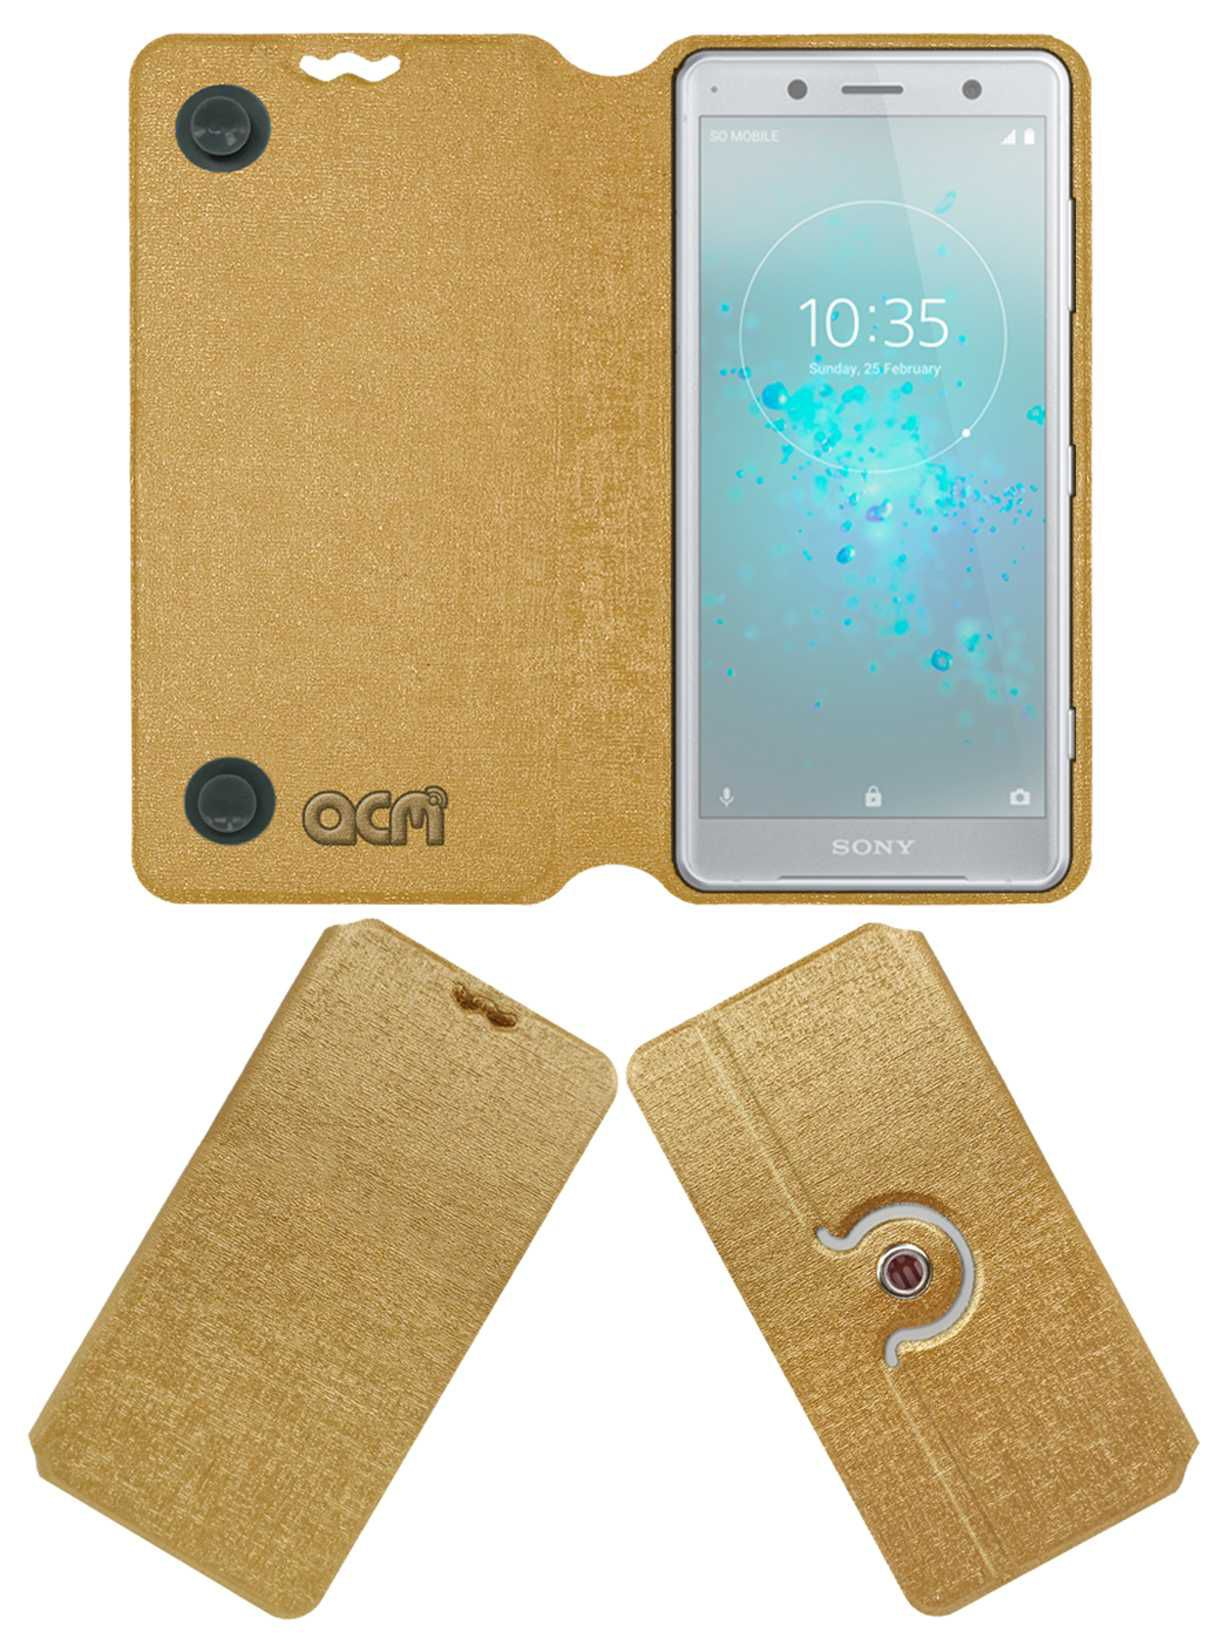 SONY XPERIA XZ2 COMPACT Flip Cover by ACM - Golden